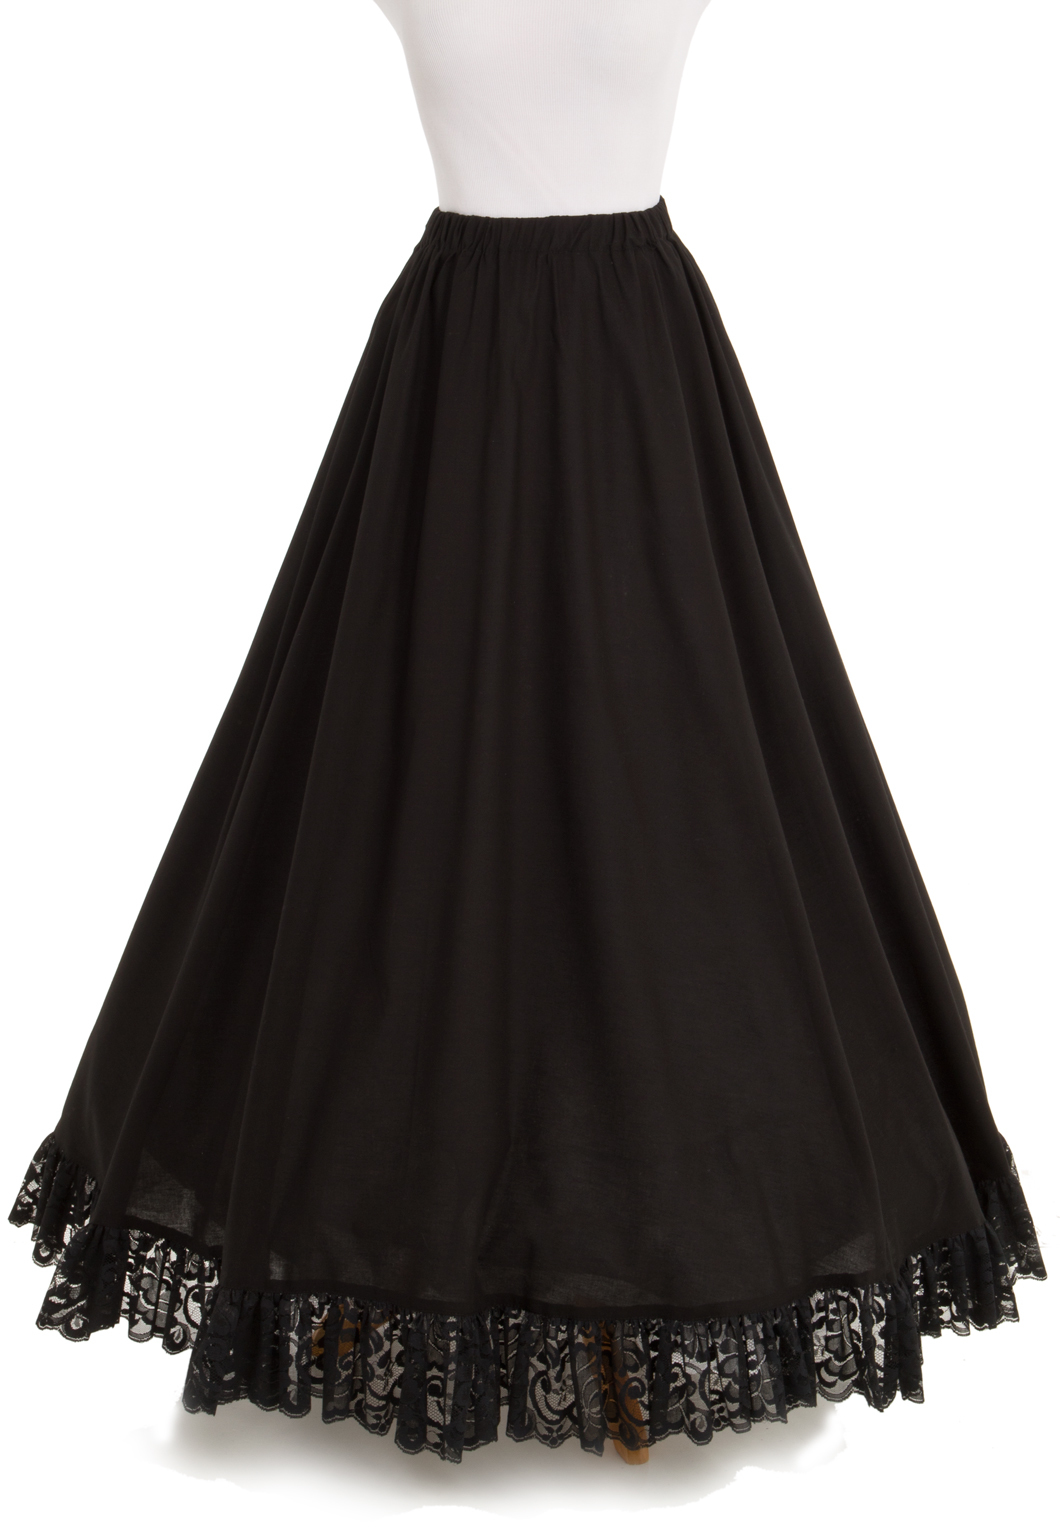 Abilene Old West Petticoat